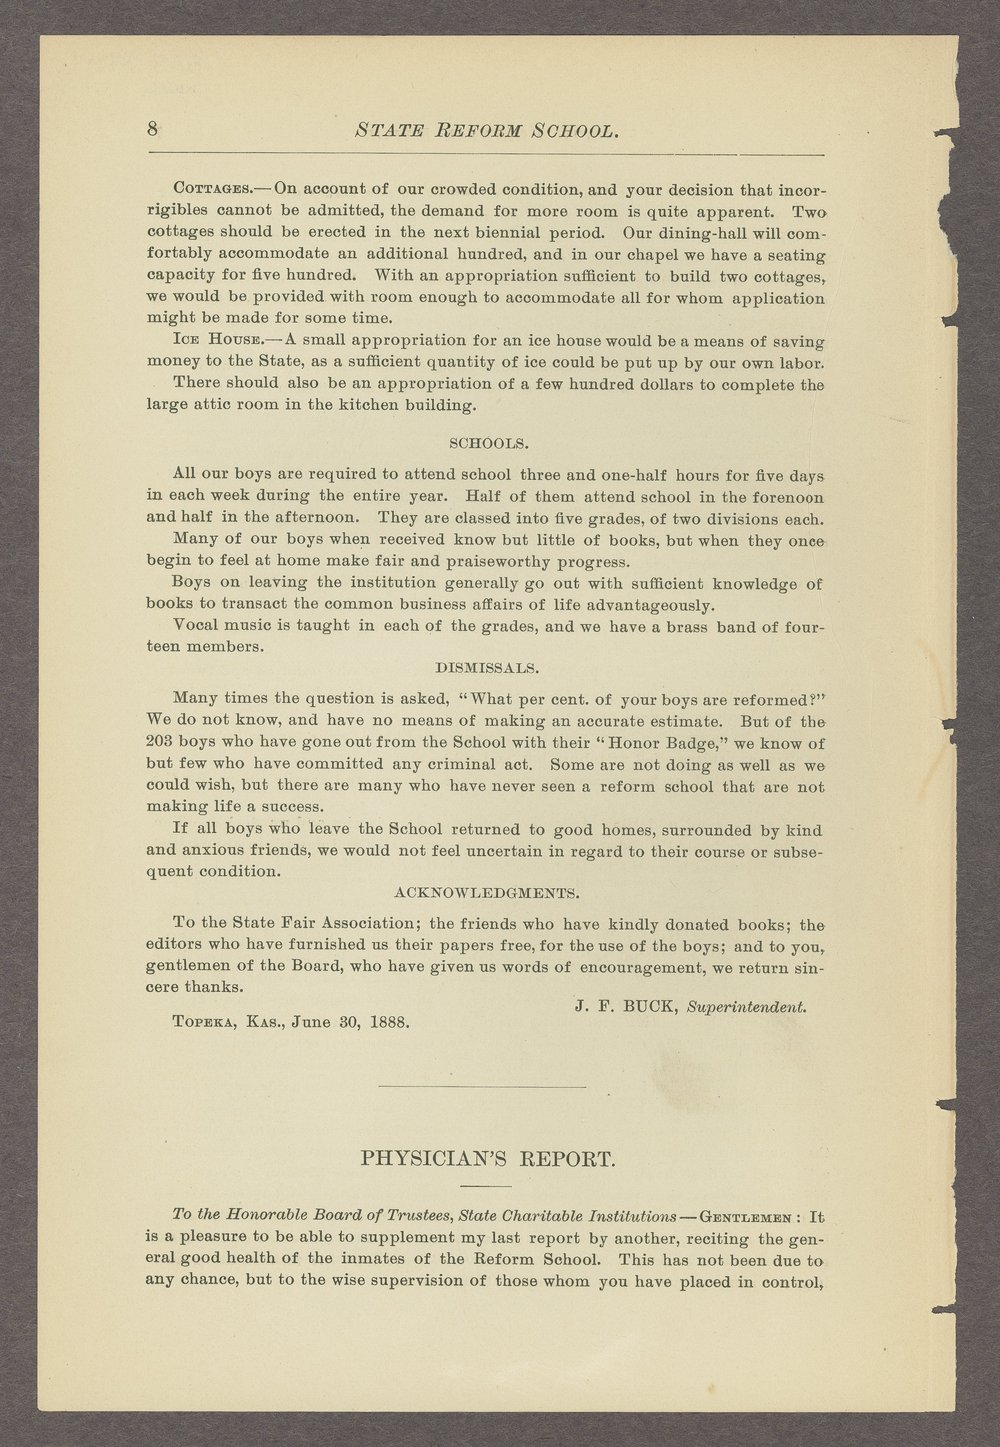 Biennial report of the State Reform School, 1888 - 8